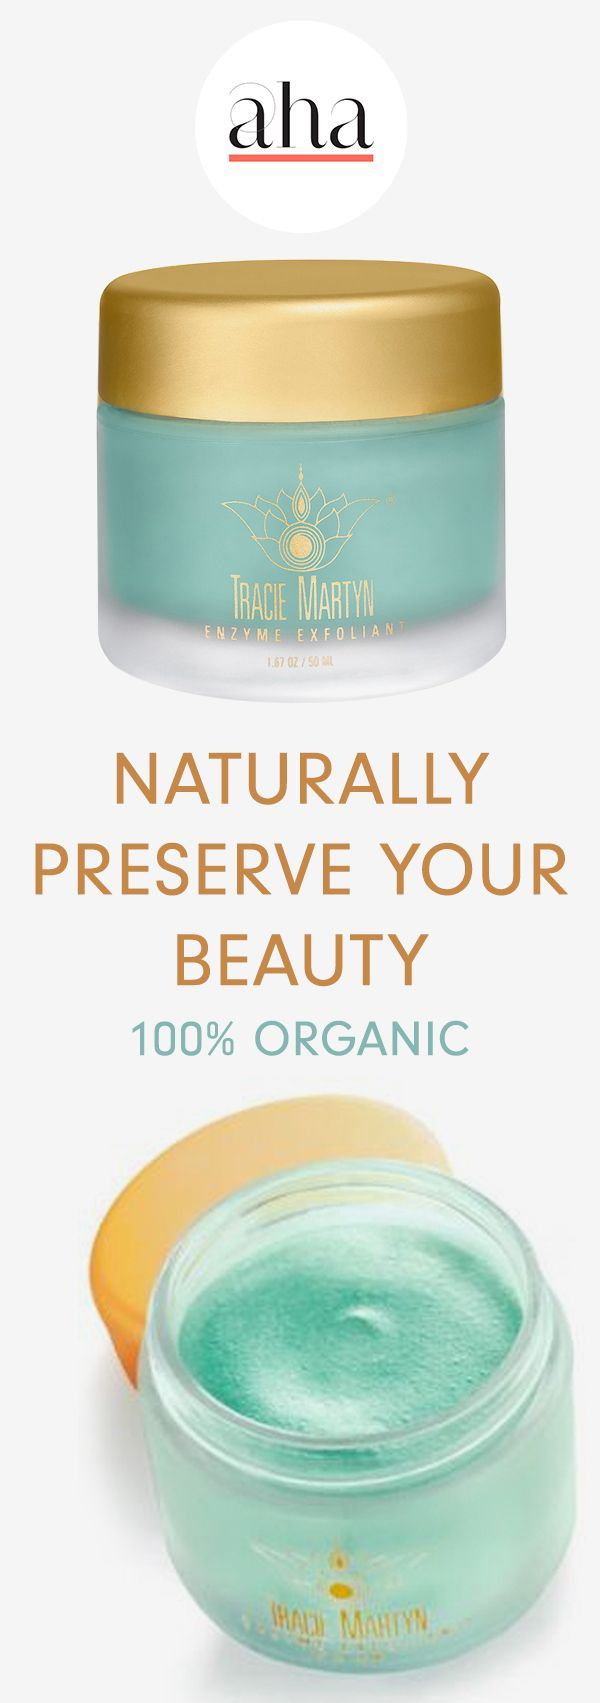 Tracie Martyn -  All-natural, luxury skin care products that deliver dramatic, instant results. Trusted by A-list celebs like Angelina Jolie and Anne Hathaway. BUY NOW: http://www.ahalife.com/product/149000005455/enzyme-exfoliant?medium=ads&utm_source=Pinterest&utm_campaign=TracieMartyn_iOS&rw=0